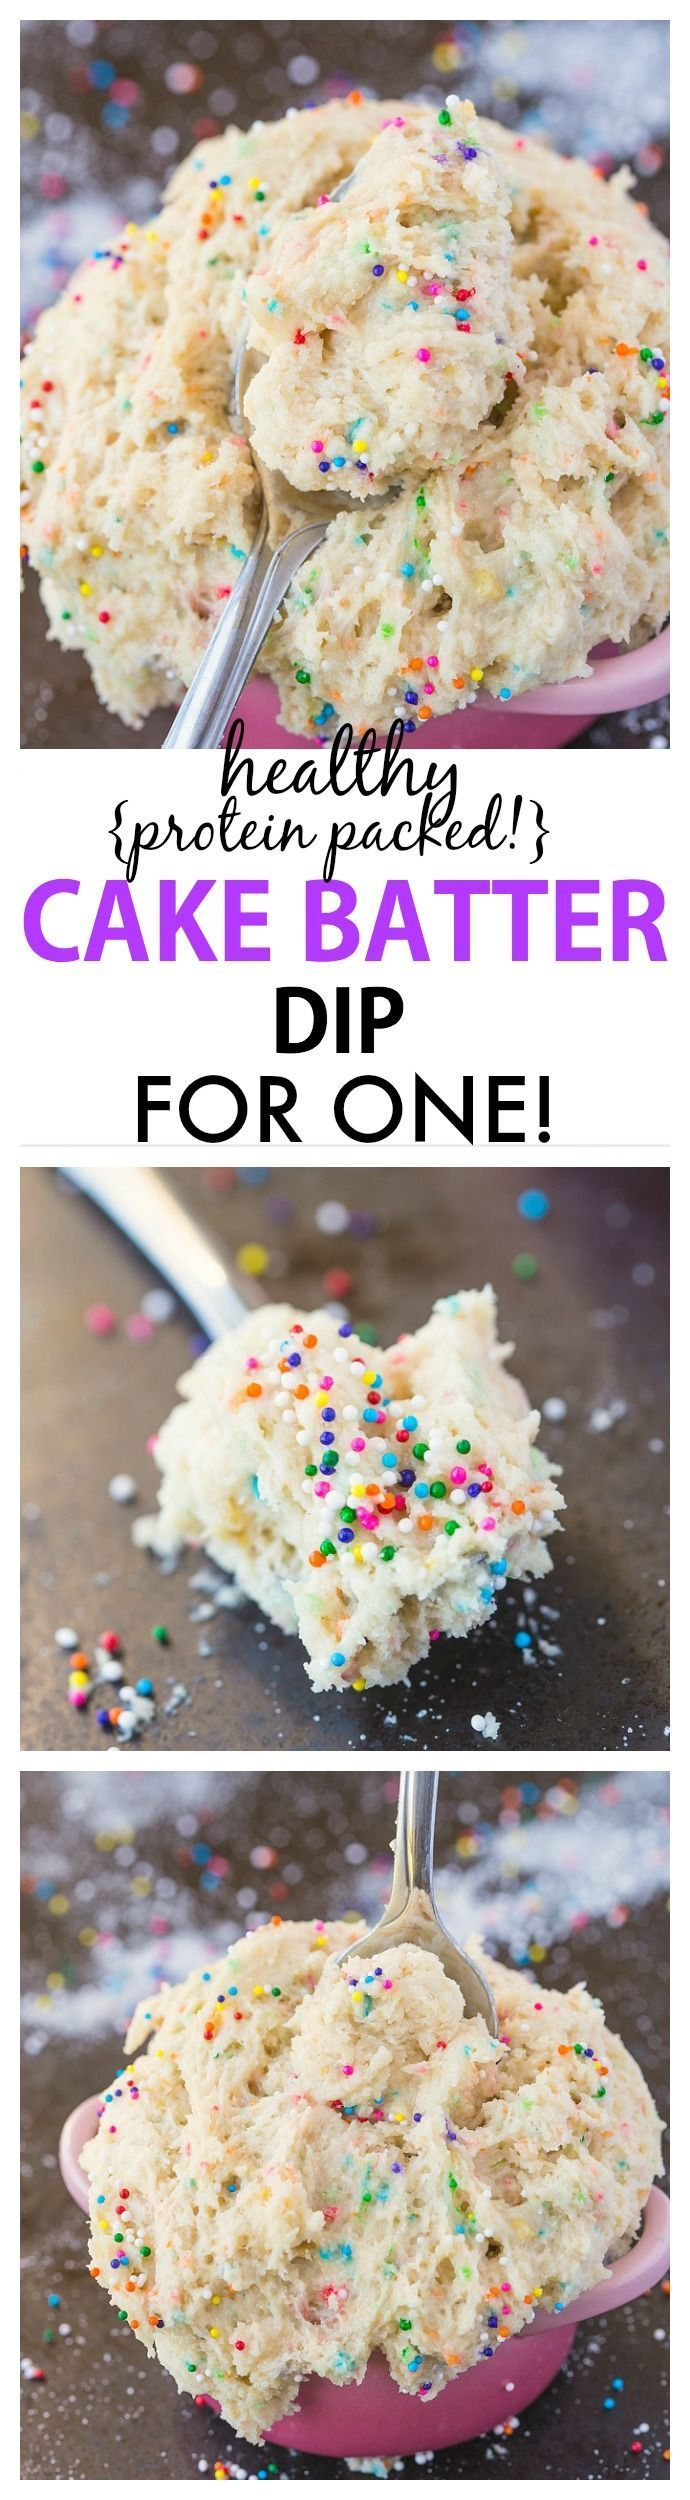 Healthy Cake Batter dip for ONE recipe- Delicious, creamy and packing over 20 grams of protein, it only takes 5 minutes to whip up! Sinfully nutritious! {vegan, gluten free, sugar free + paleo options} - http://thebigmansworld.com